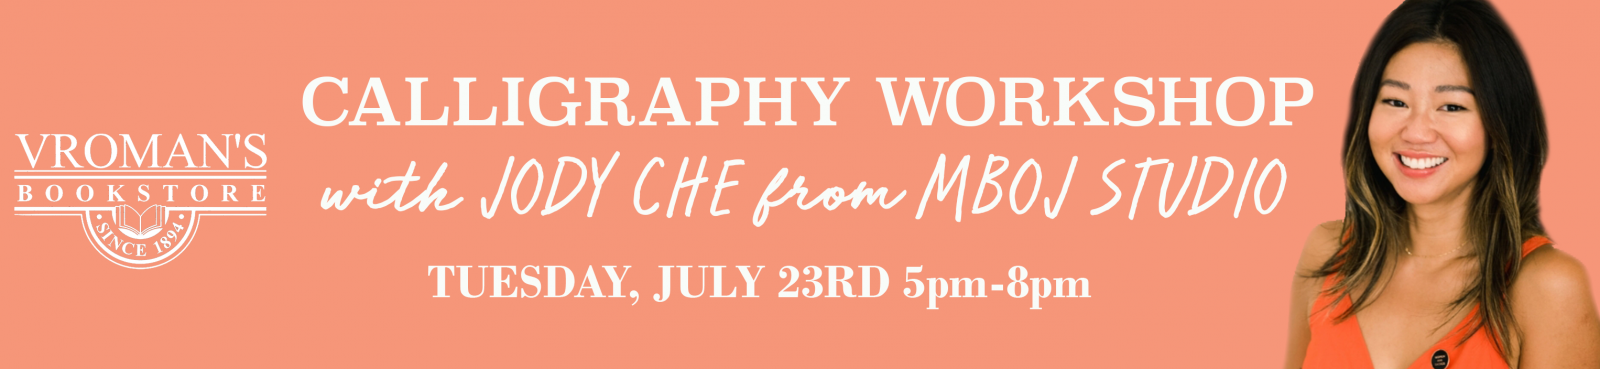 Calligraphy Workshop with Jody Che, Tuesday July 23rd at 5pm